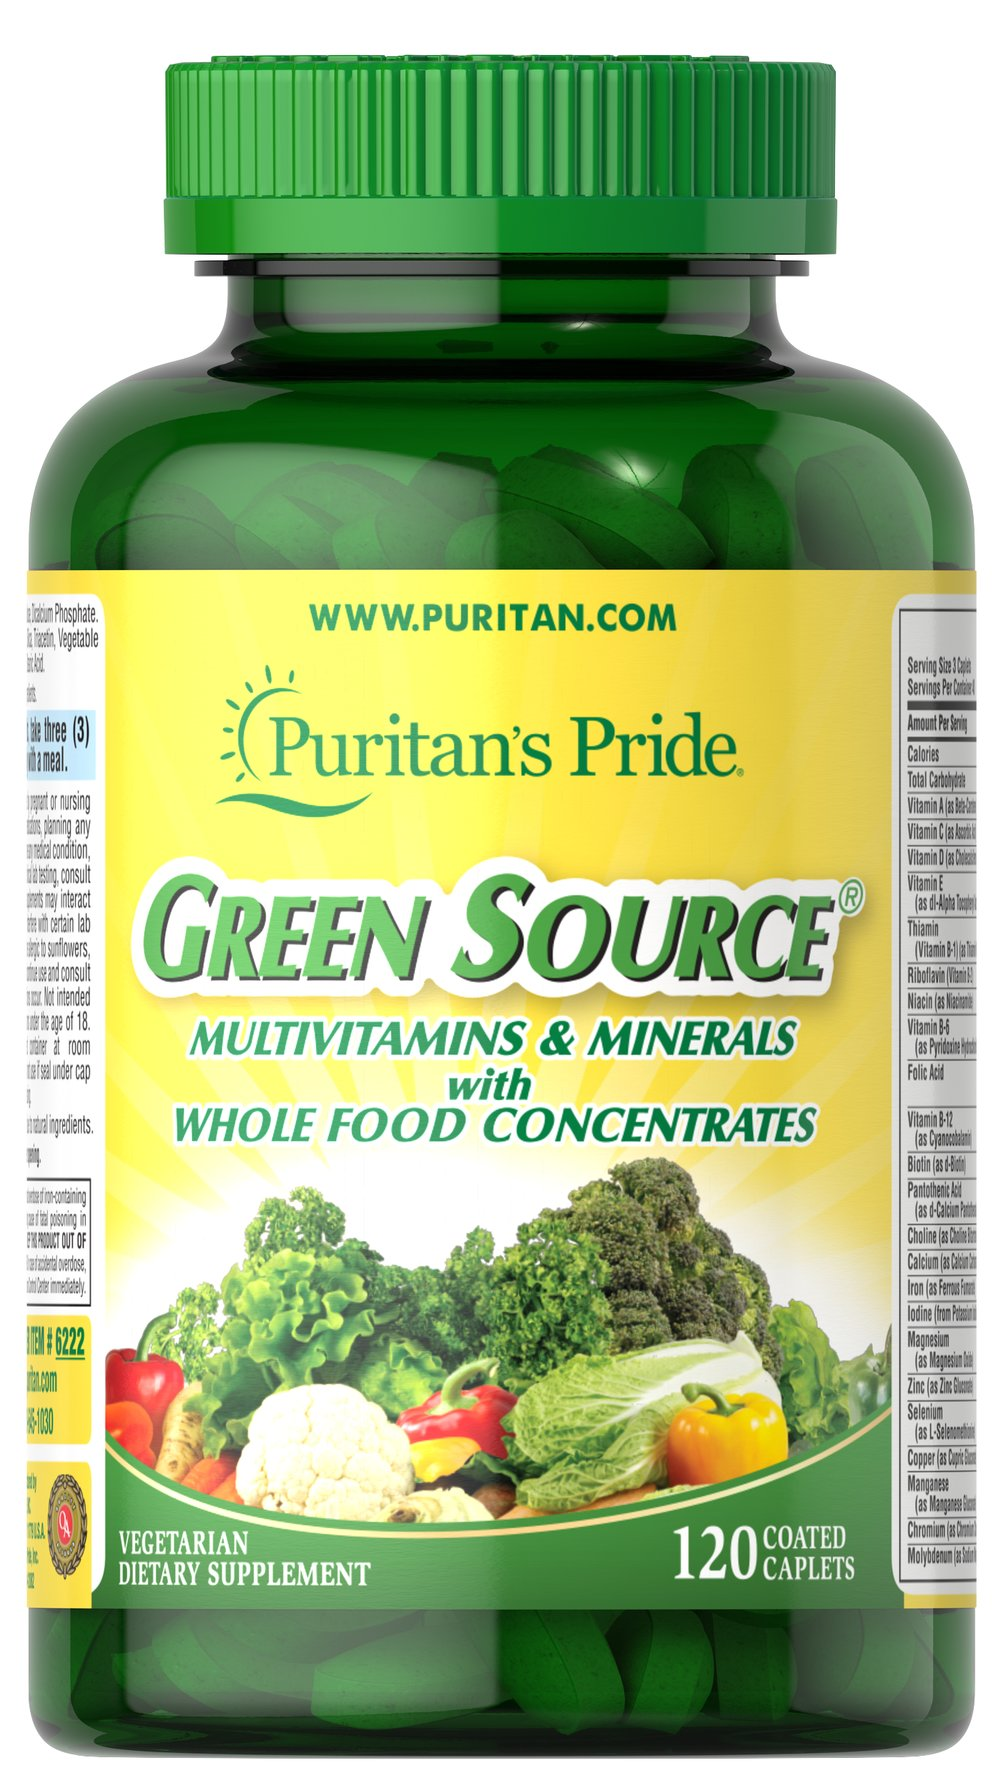 Green Source® Multivitamin & Minerals <p>This concentrated formula contains potent food source nutrients to provide essential vitamins, minerals, enzymes and amino acids. It also provides all the naturally occurring active constituents of whole foods.</p> 120 Caplets  $34.99